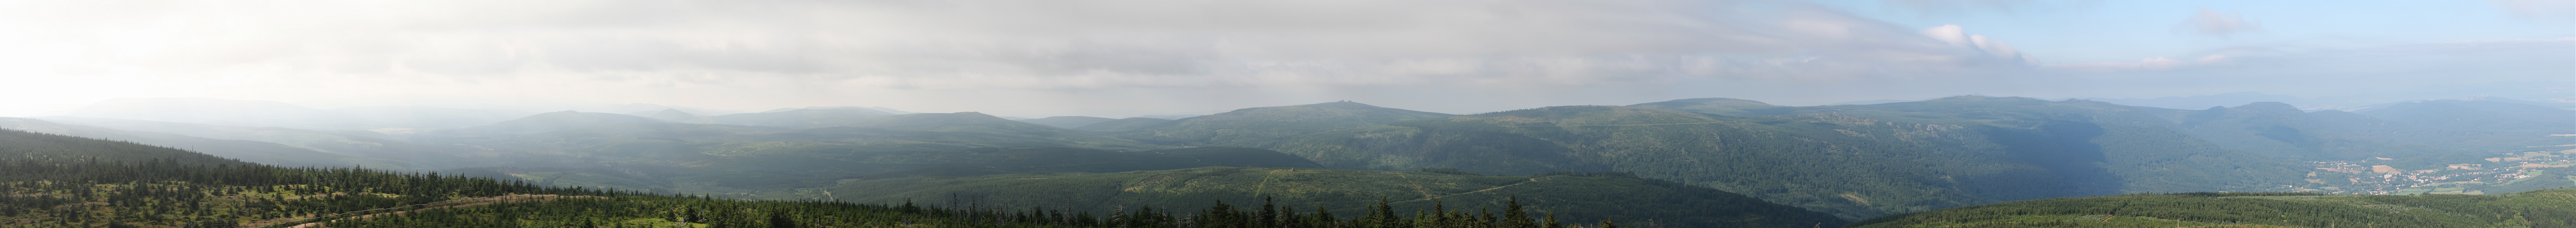 Panorama of the Czech part of the Jizera Mountains from a look-out tower on the top of Smrk